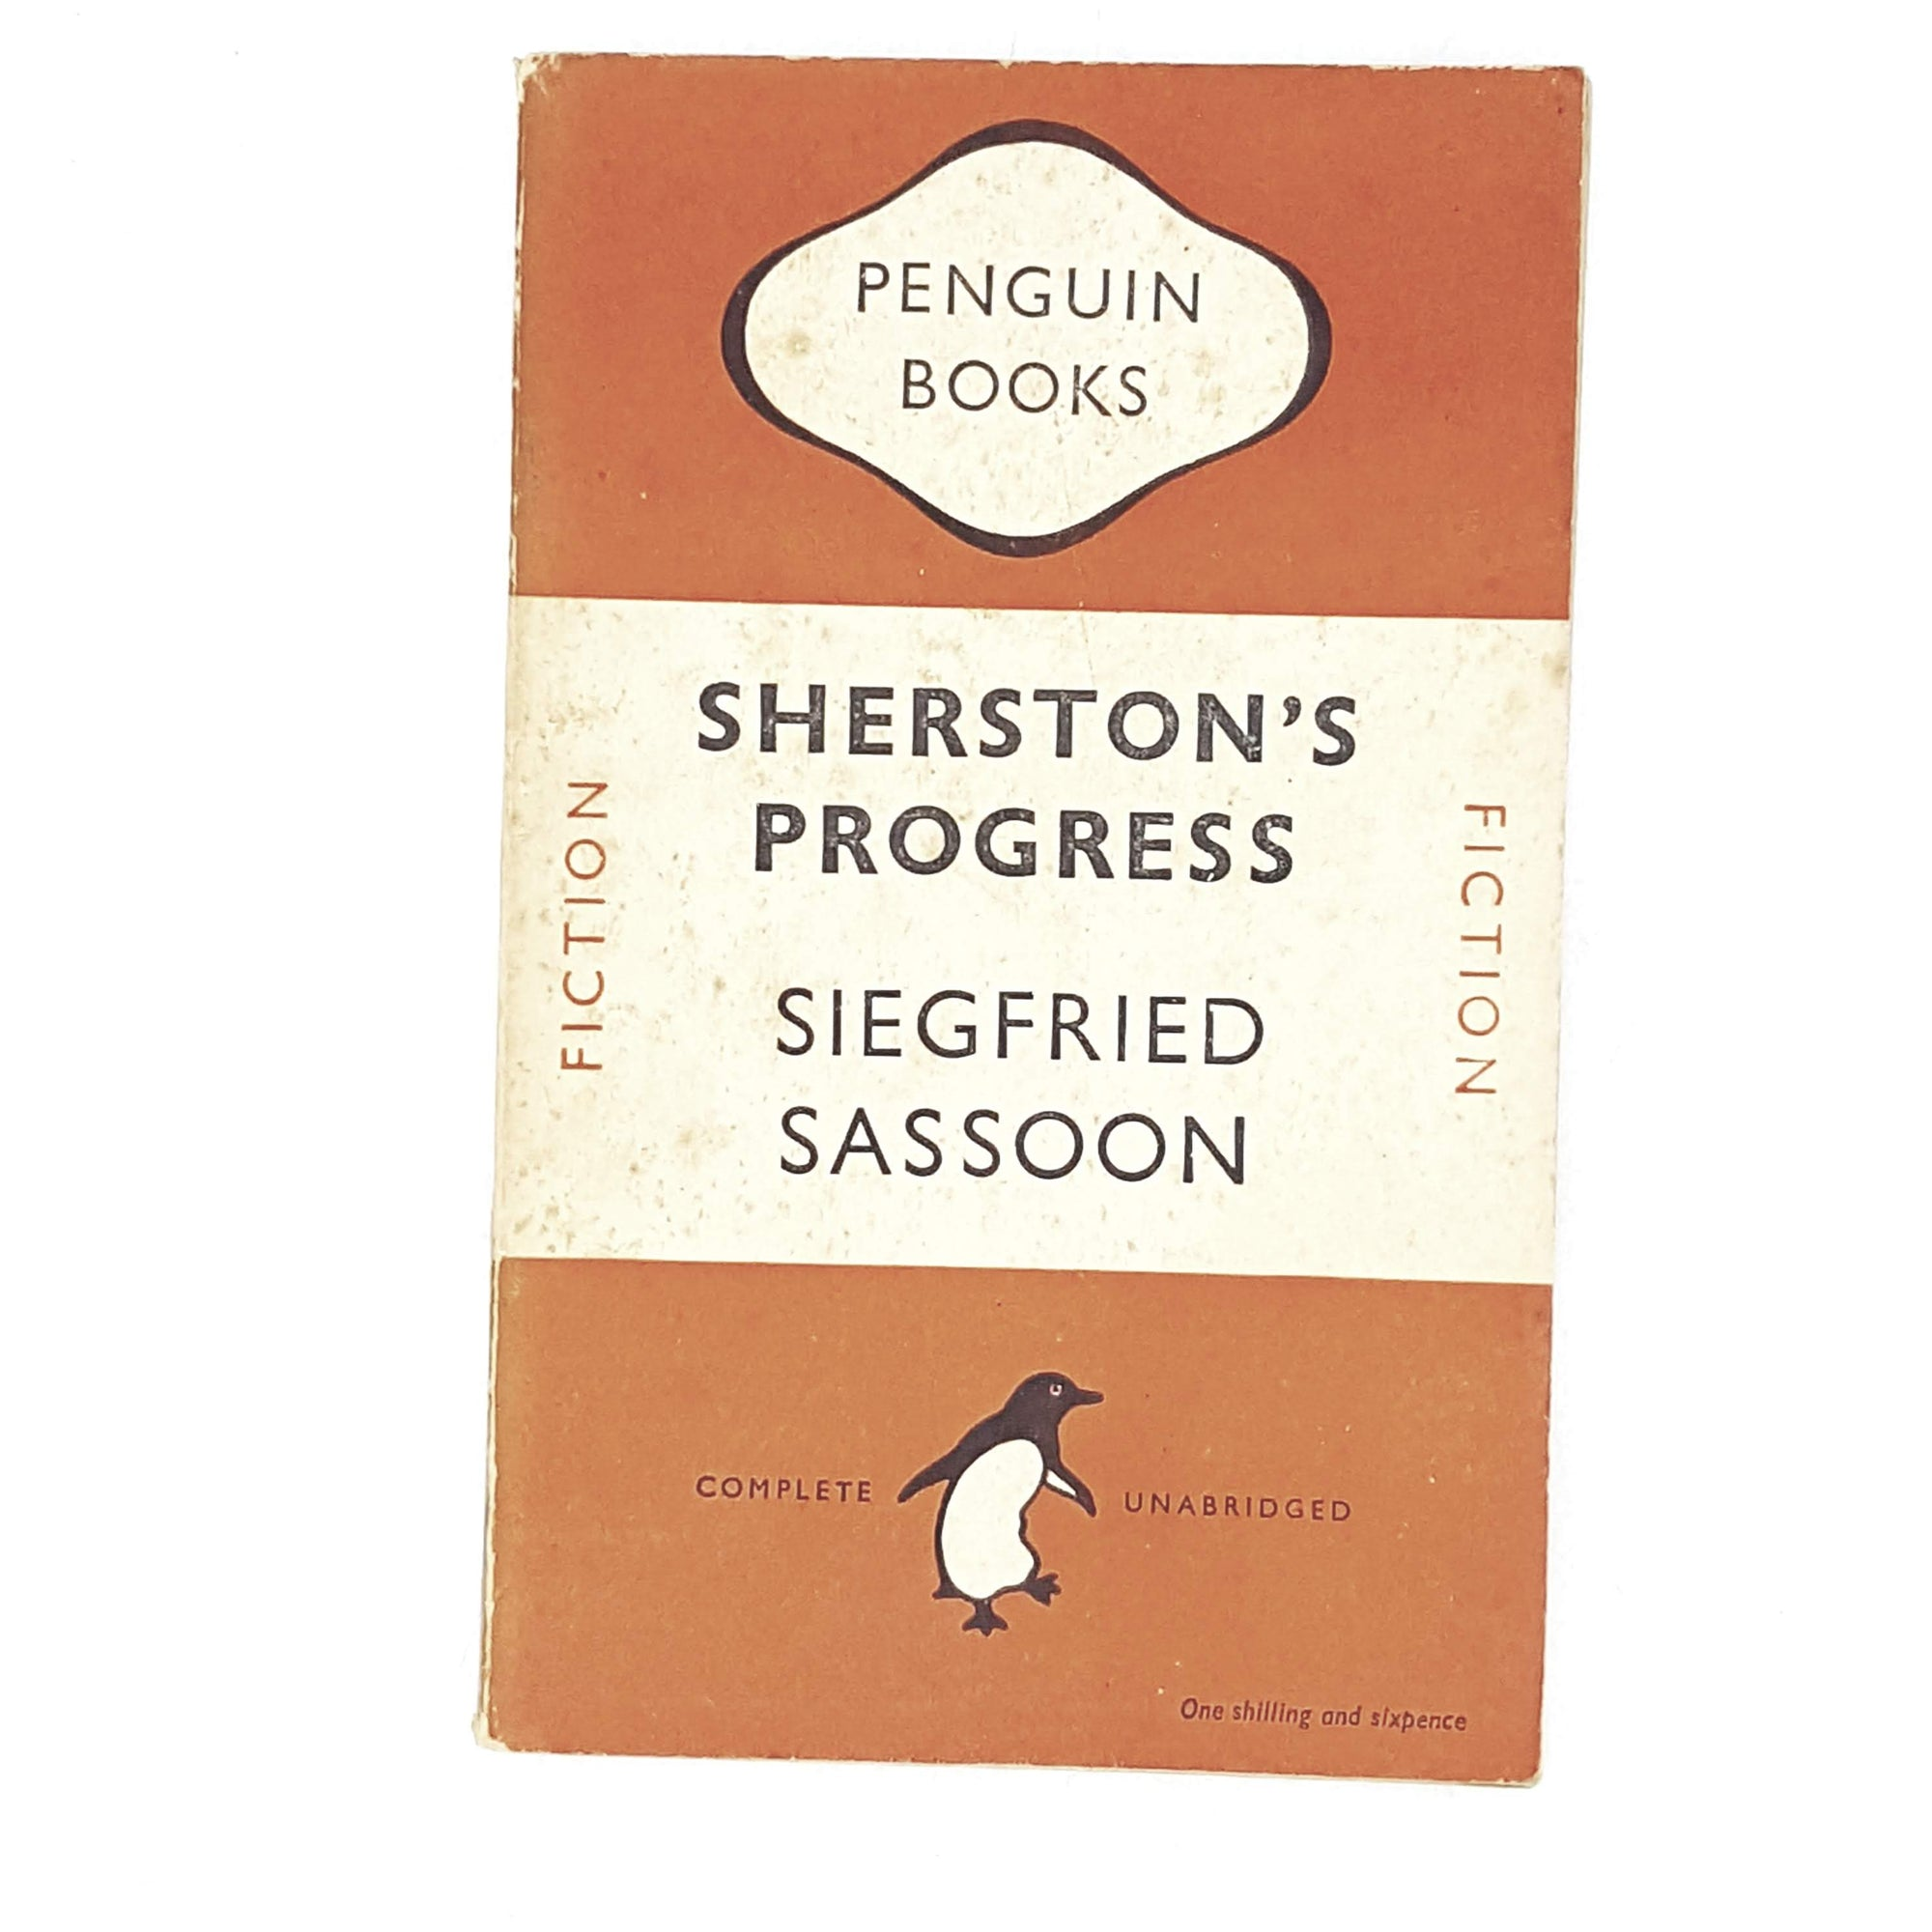 Vintage Penguin Sherston's Progress by Siegfried Sassoon 1948